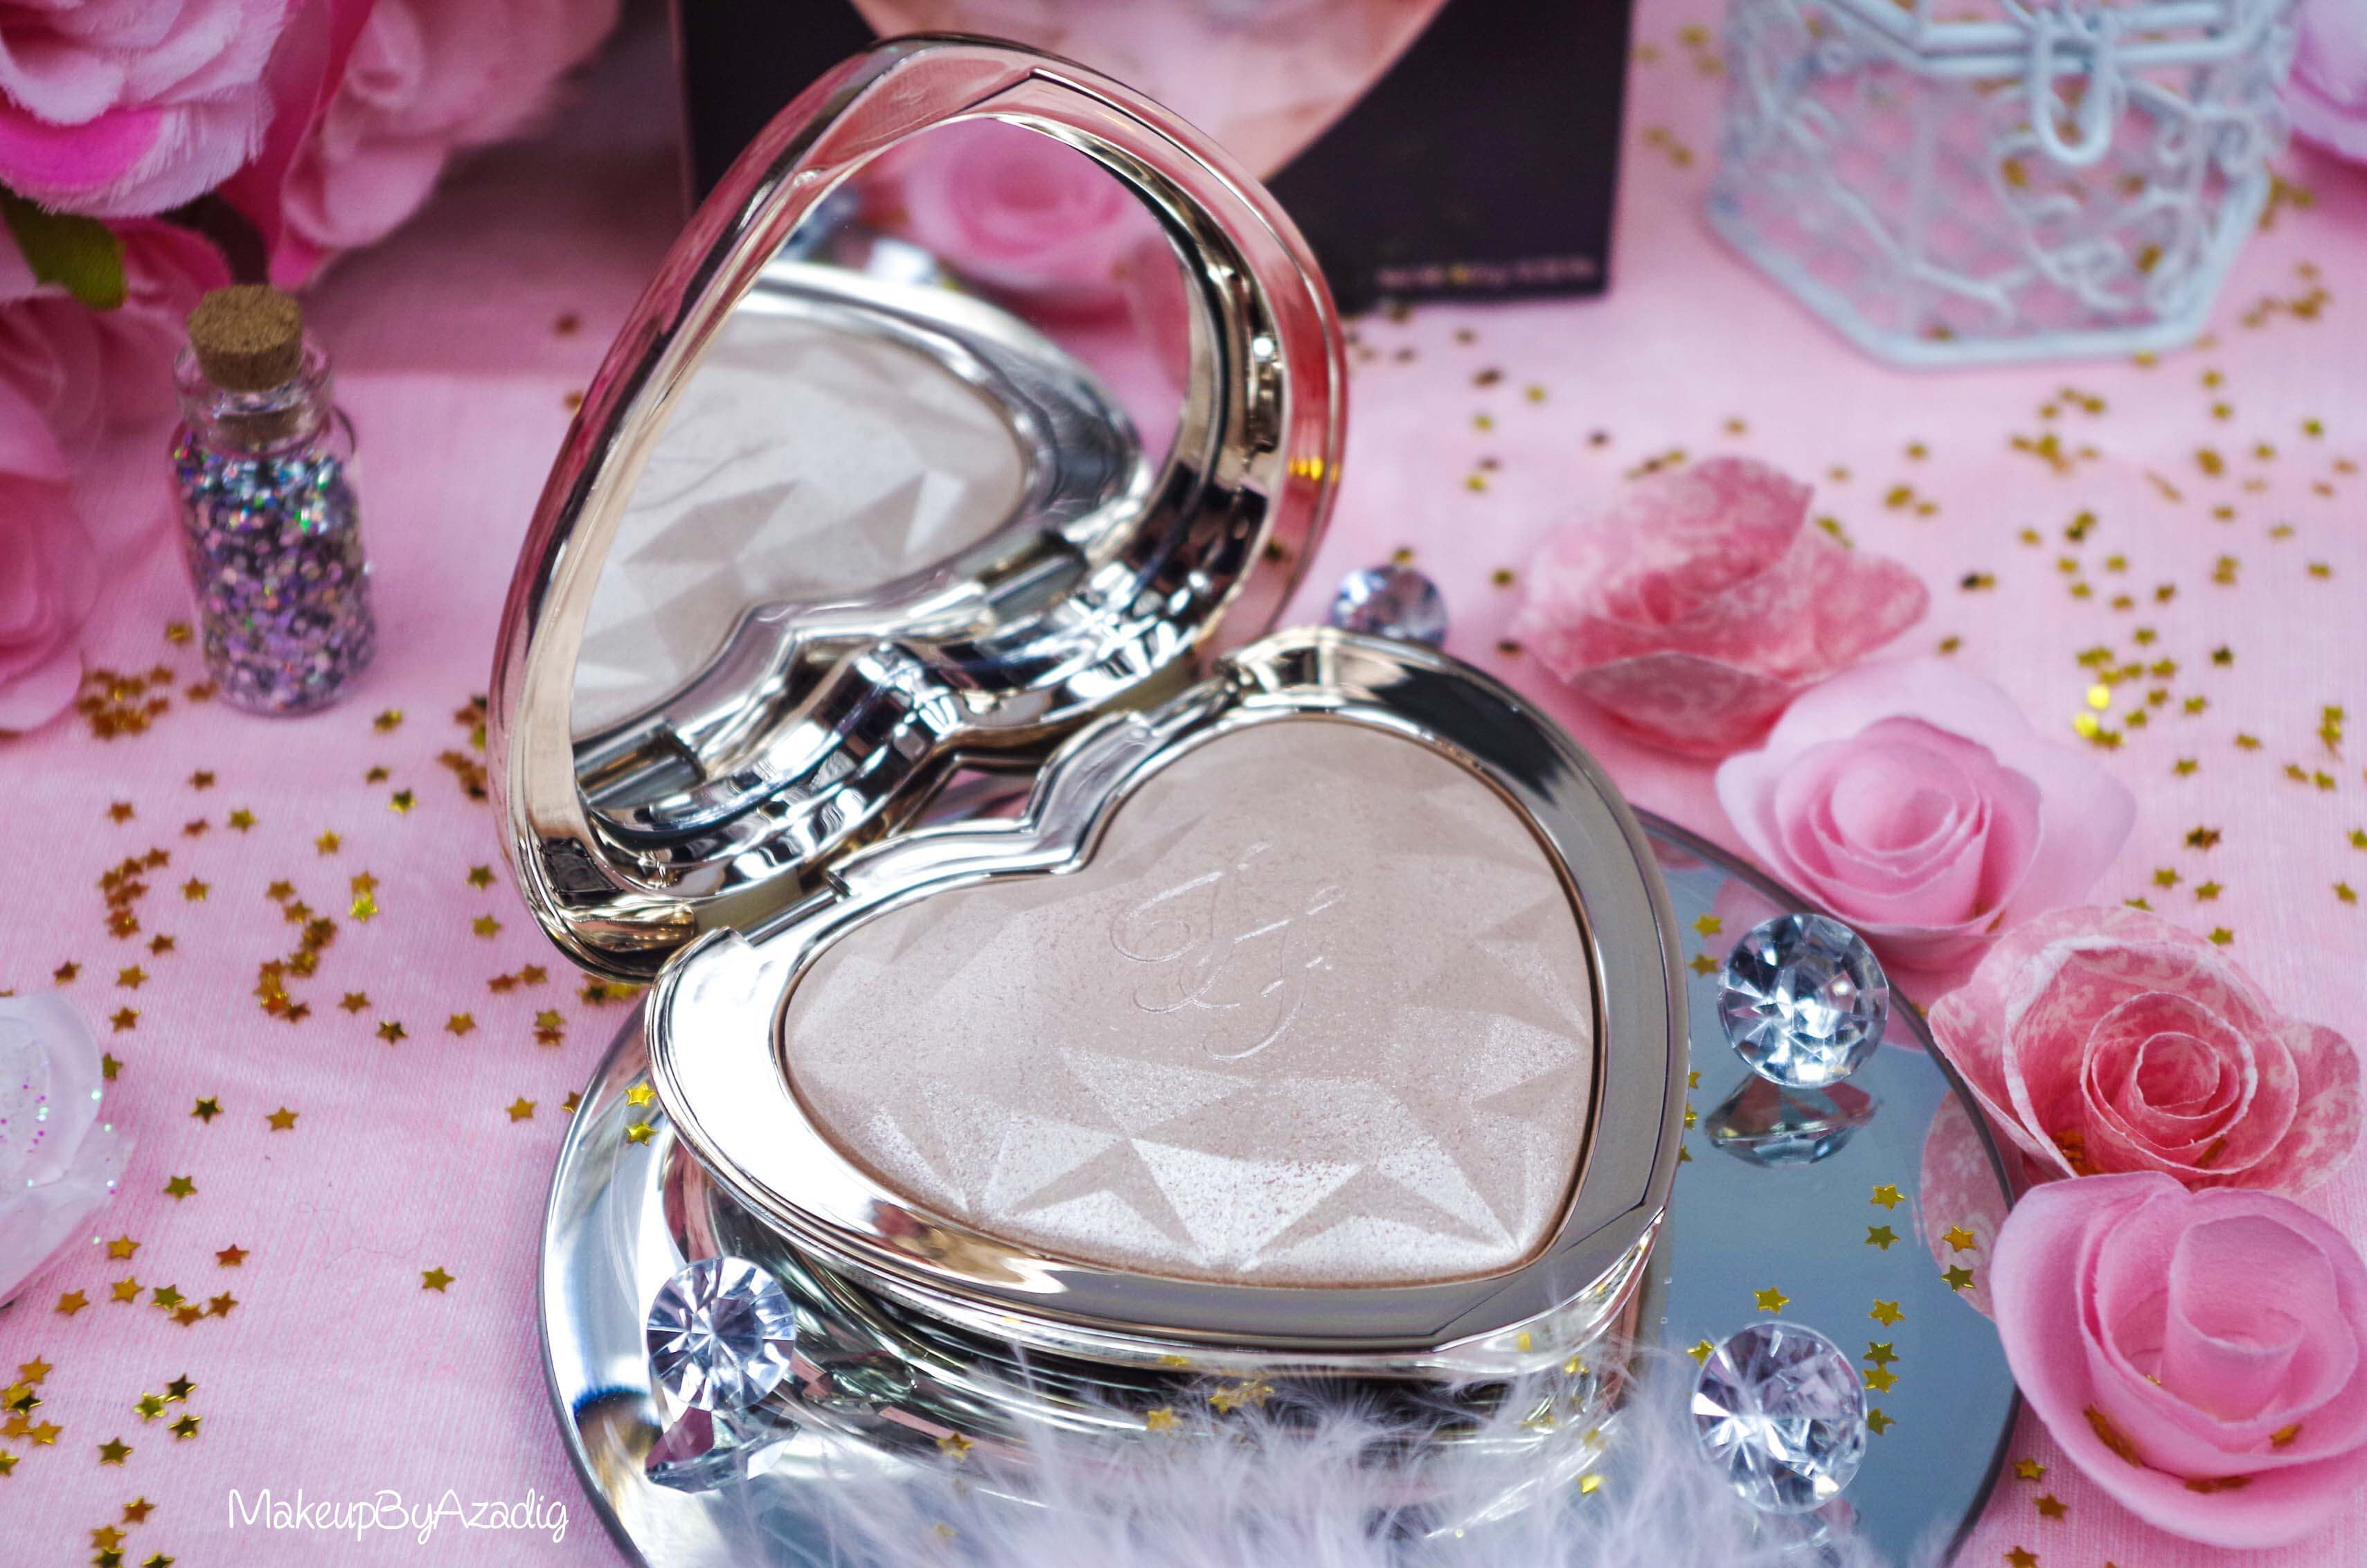 revue-review-highlighter-love-light-too-faced-coeur-avis-prix-sephora-makeupbyazadig-blinded